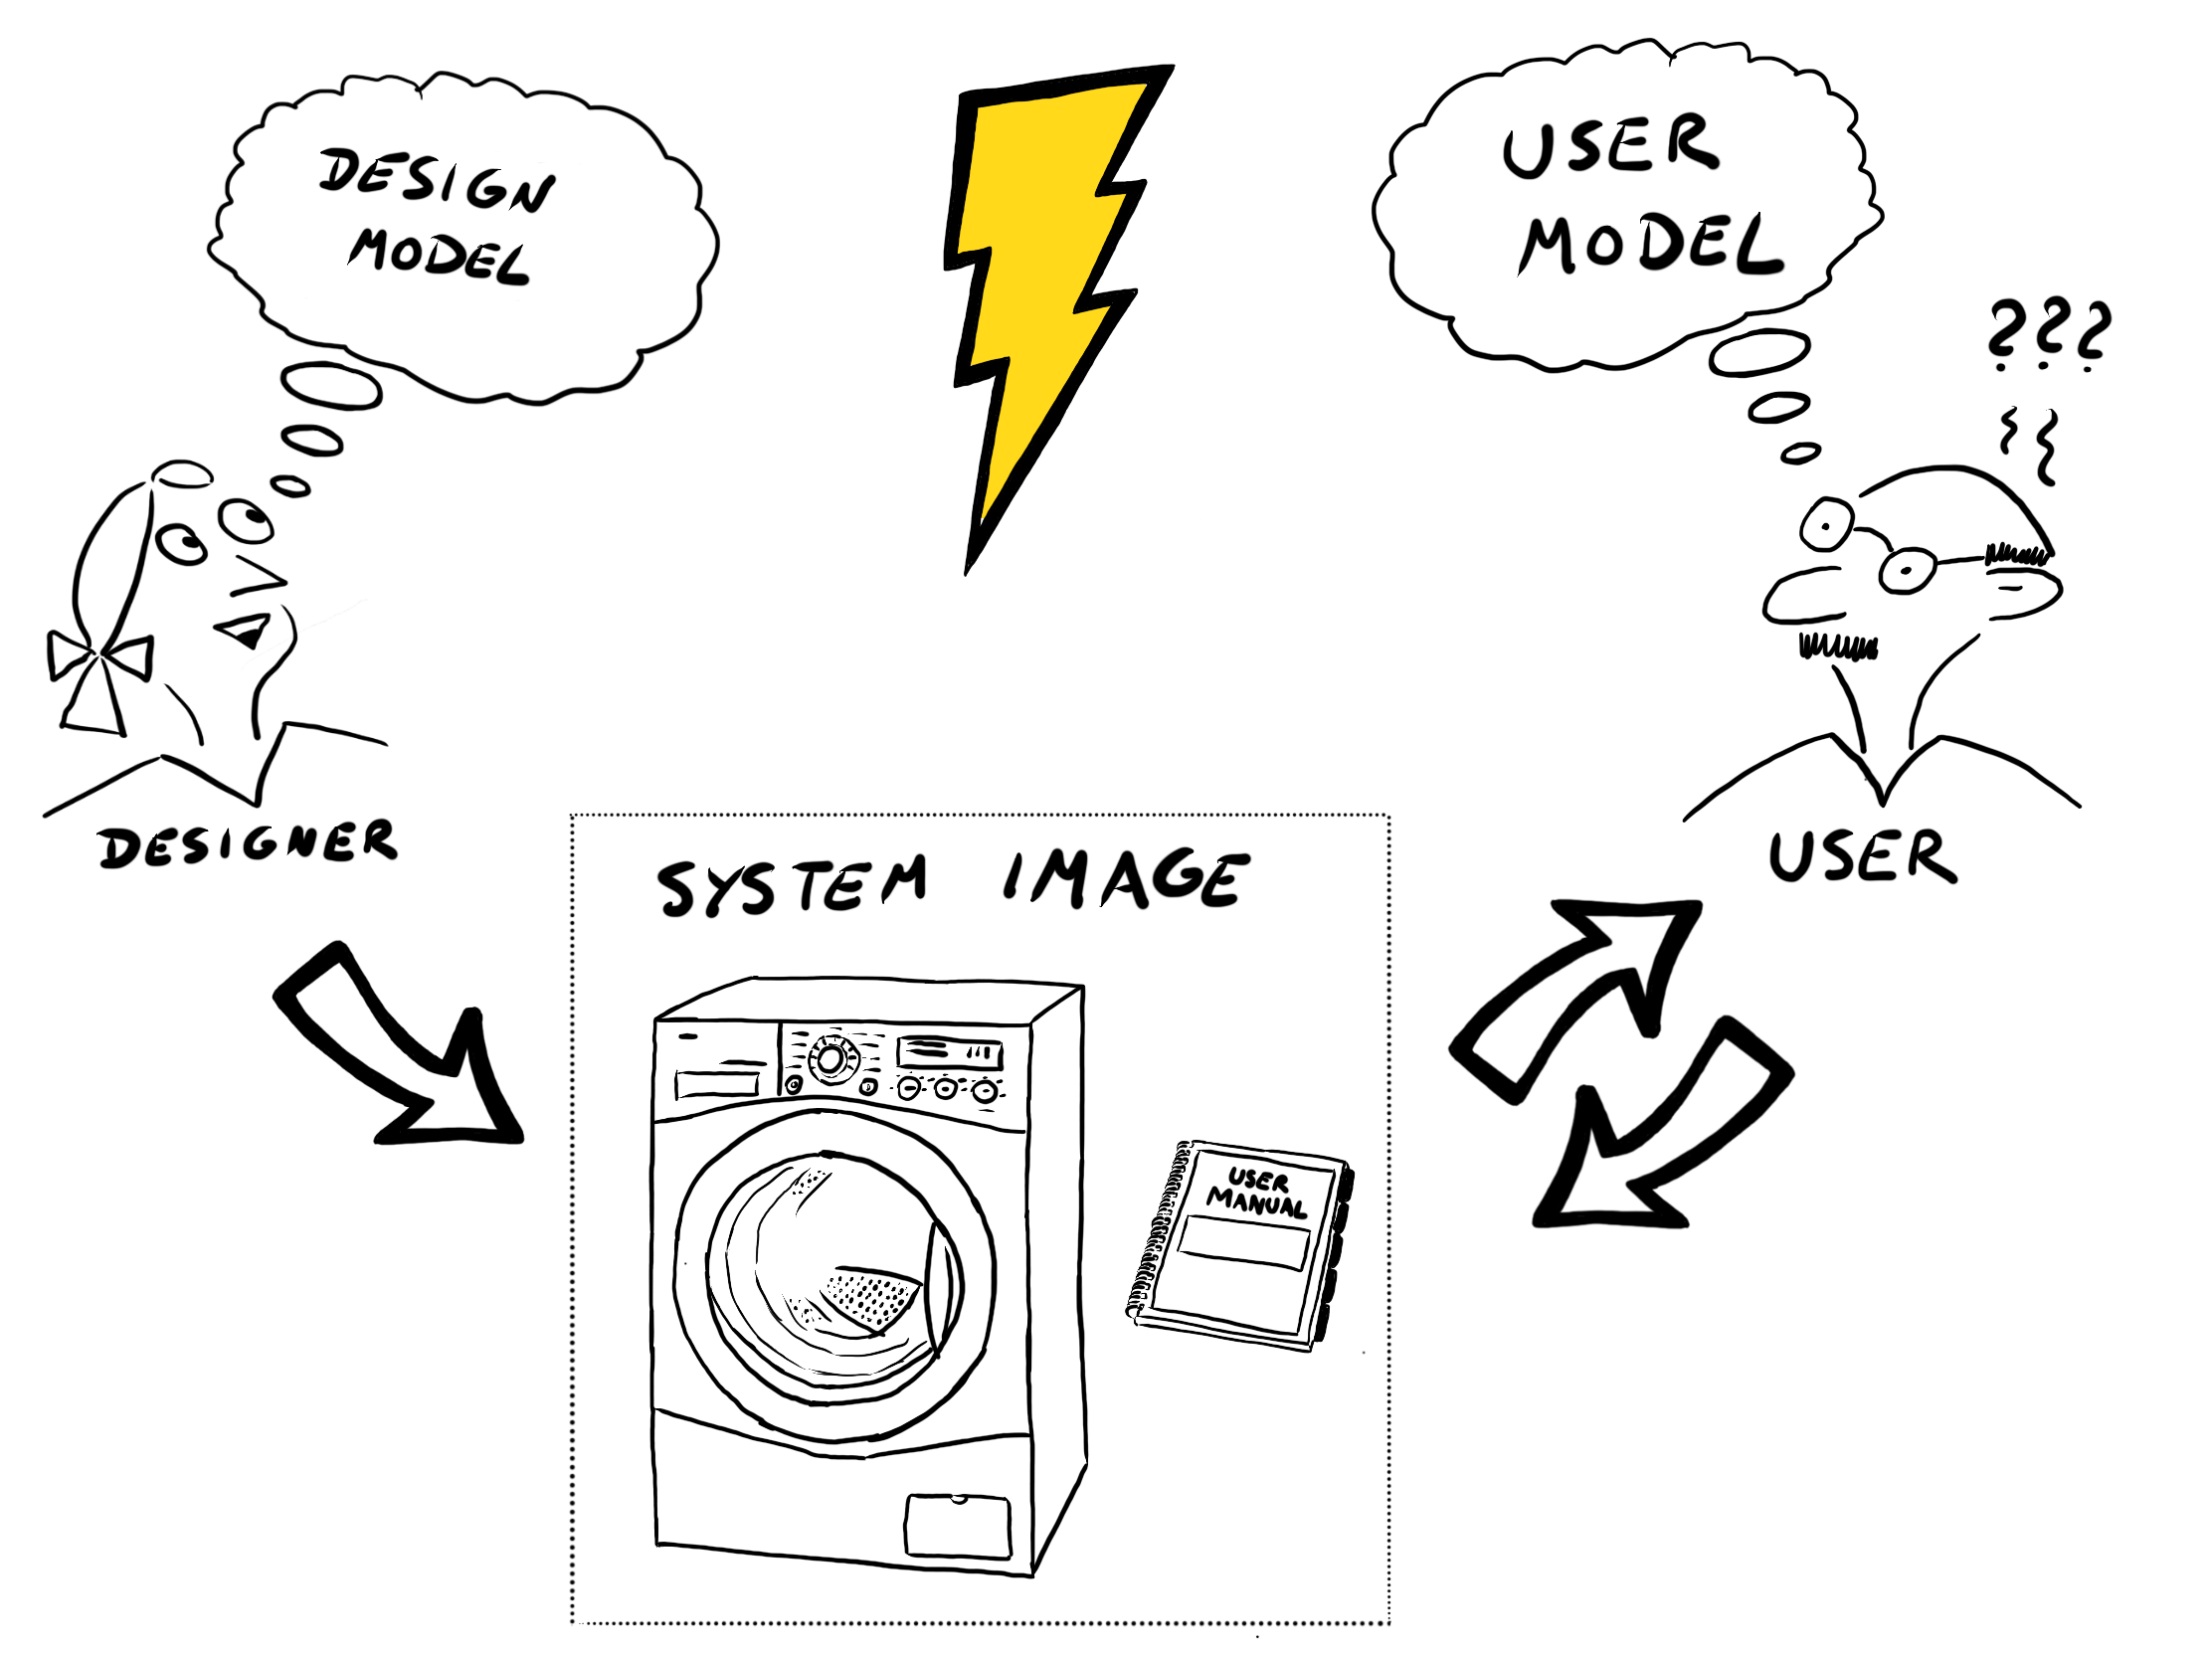 The user's mental model is not identical with the product designer's mental model. Graphic adopted from The Design of Everyday Things by Don Norman. Mental models in API design – Ole Begemann - design of everyday things design model vs user model 2224px - Mental models in API design – Ole Begemann